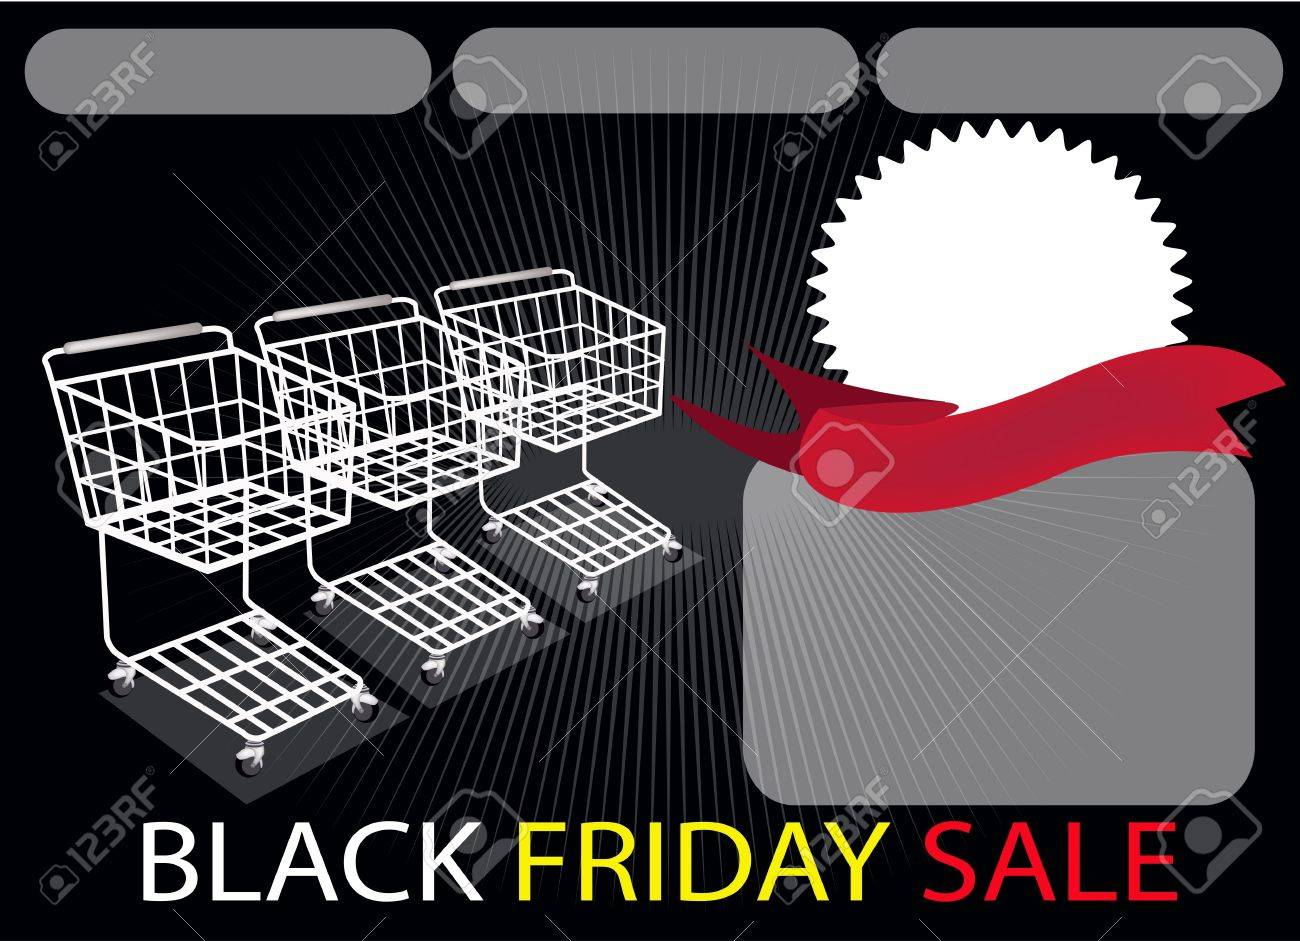 Three Shopping Carts and A Round Label on Black Friday Background with Copy Space and Text Decorated, Sign for Start Christmas Shopping Season Stock Vector - 21269030